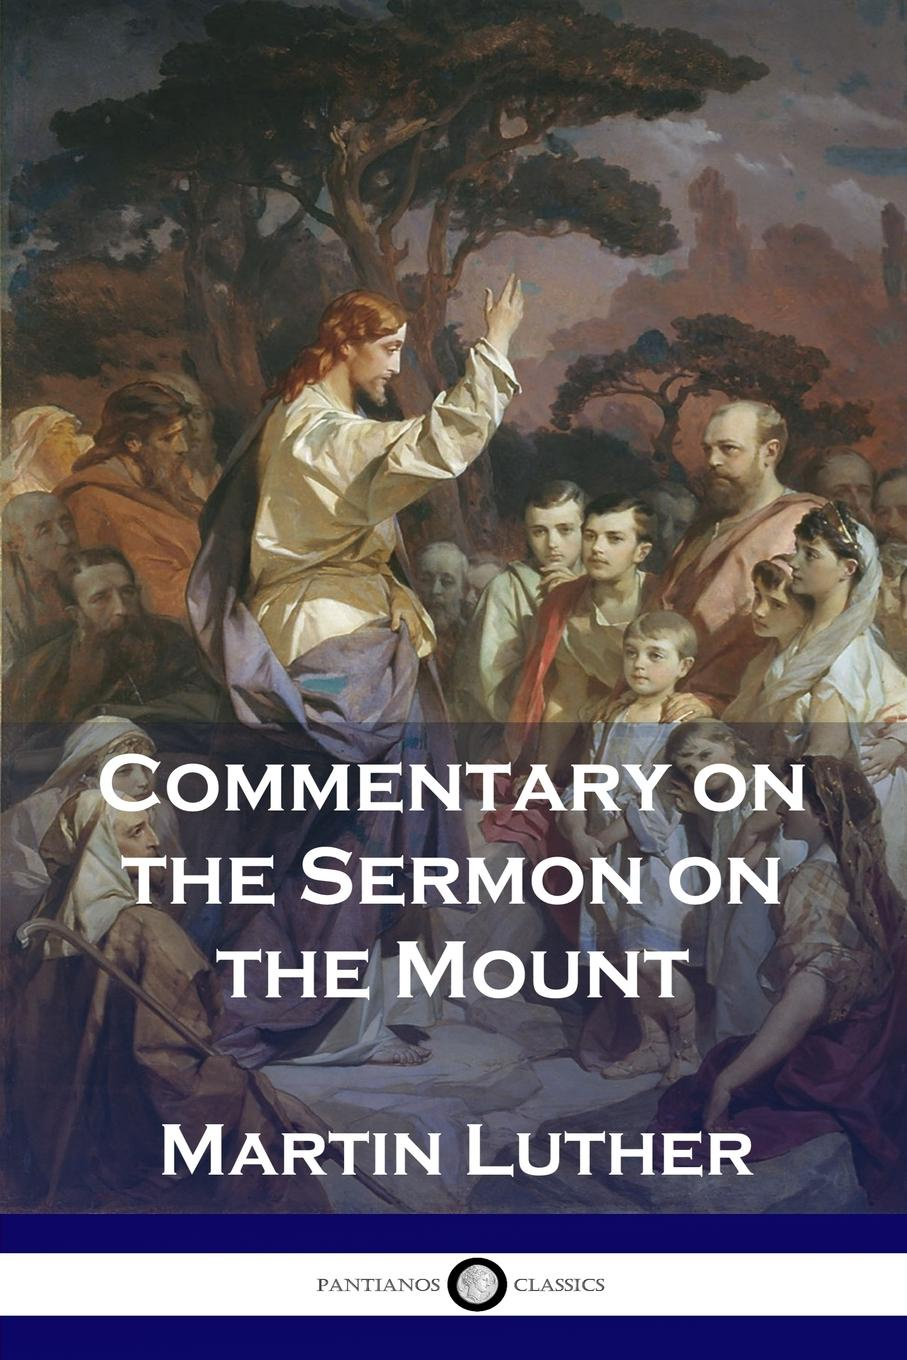 Martin Luther, Charles Hay Commentary on the Sermon Mount